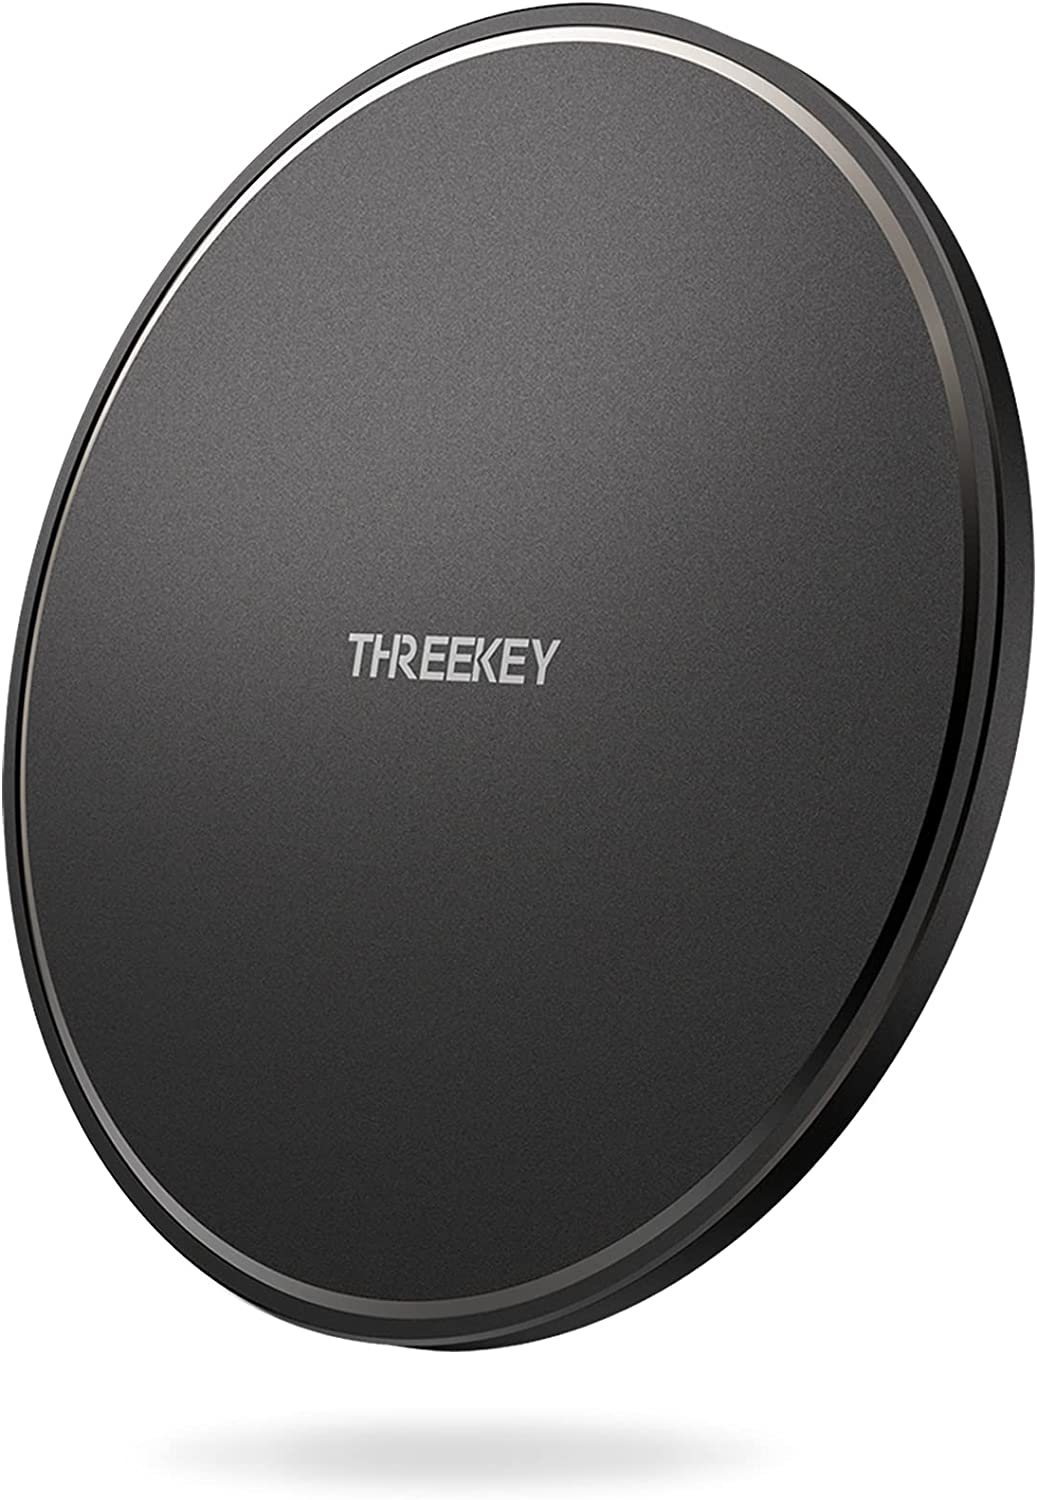 THREEKEY Wireless Charger, 10W Qi-Certified Wireless Charging Pad, Compatible for iPhone 12 Pro Max/SE/11 Pro Max/X/XS Max/8 Plus, Samsung Galaxy S21/S20/Note10/S10, AirPods Pro, Black (No AC Adapter)